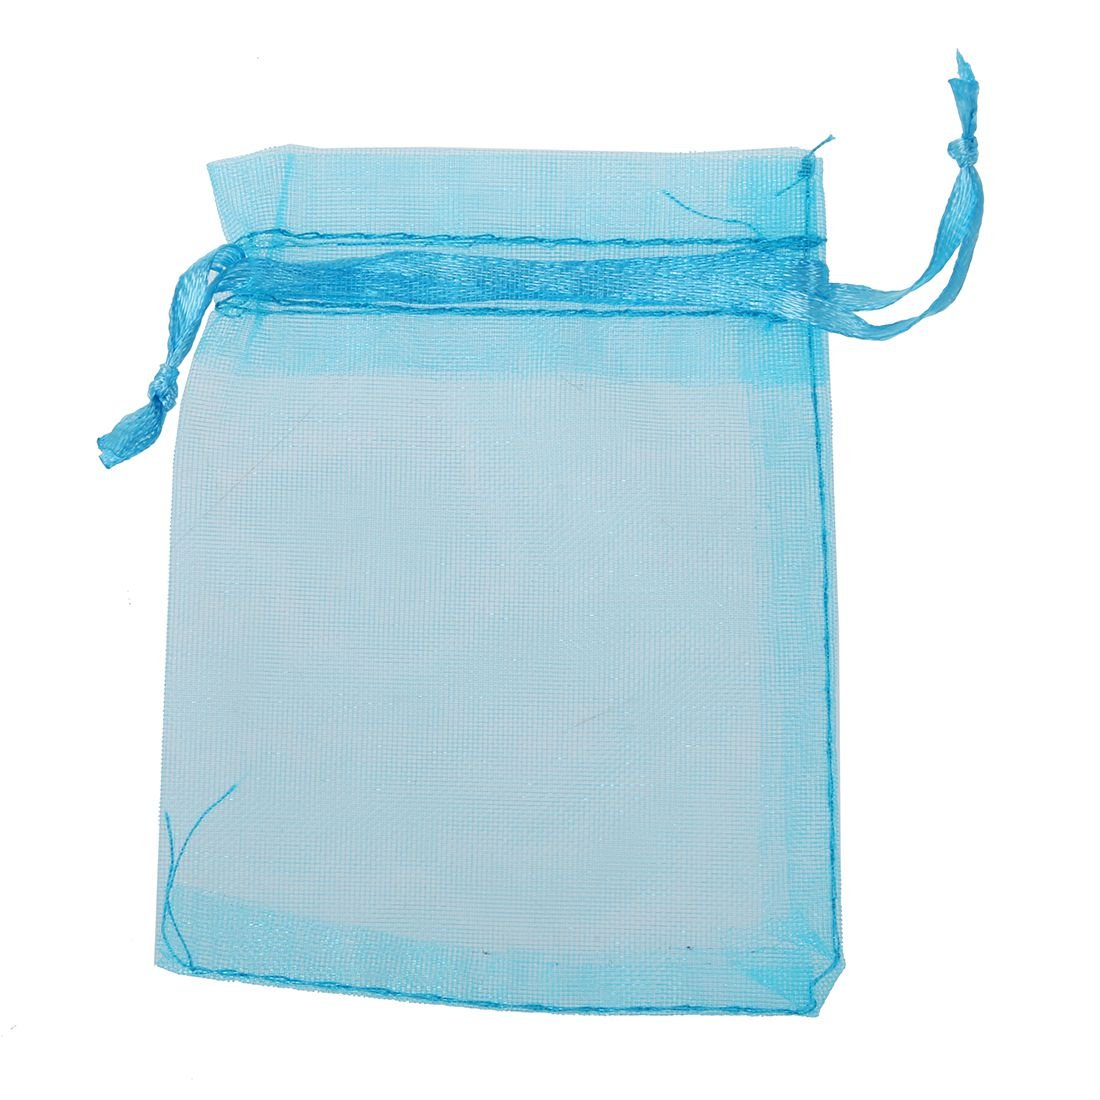 Gift Bags - SODIAL(R)10 PCS 7x9cm Organza Jewelry Candy Gift Pouch Bags Wedding Xmas Favors Royal blue TRTA11A